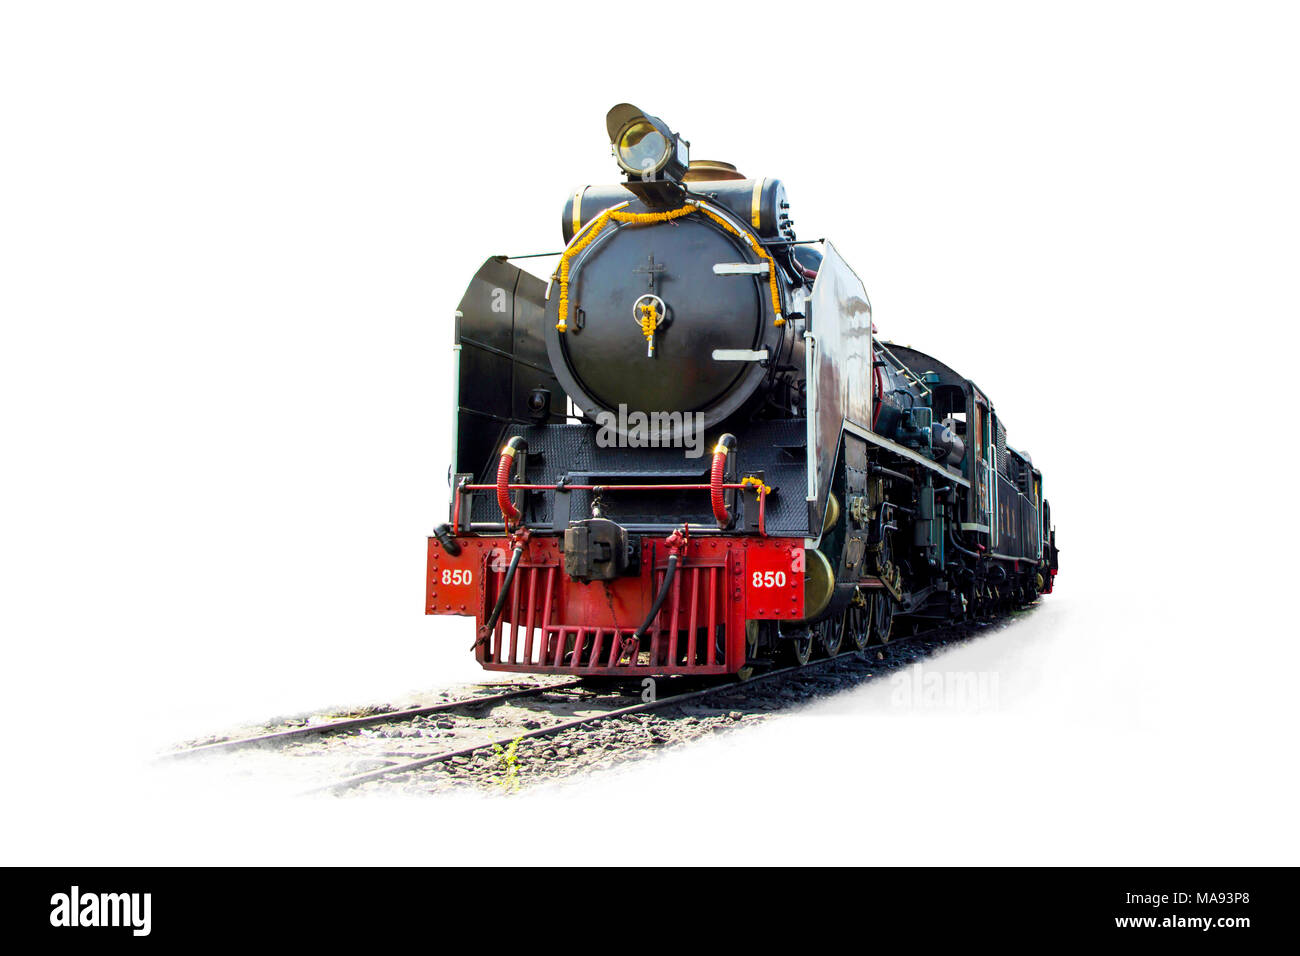 Old steam locomotive Pacific on the tracks from Thailand isolated on white background. - Stock Image